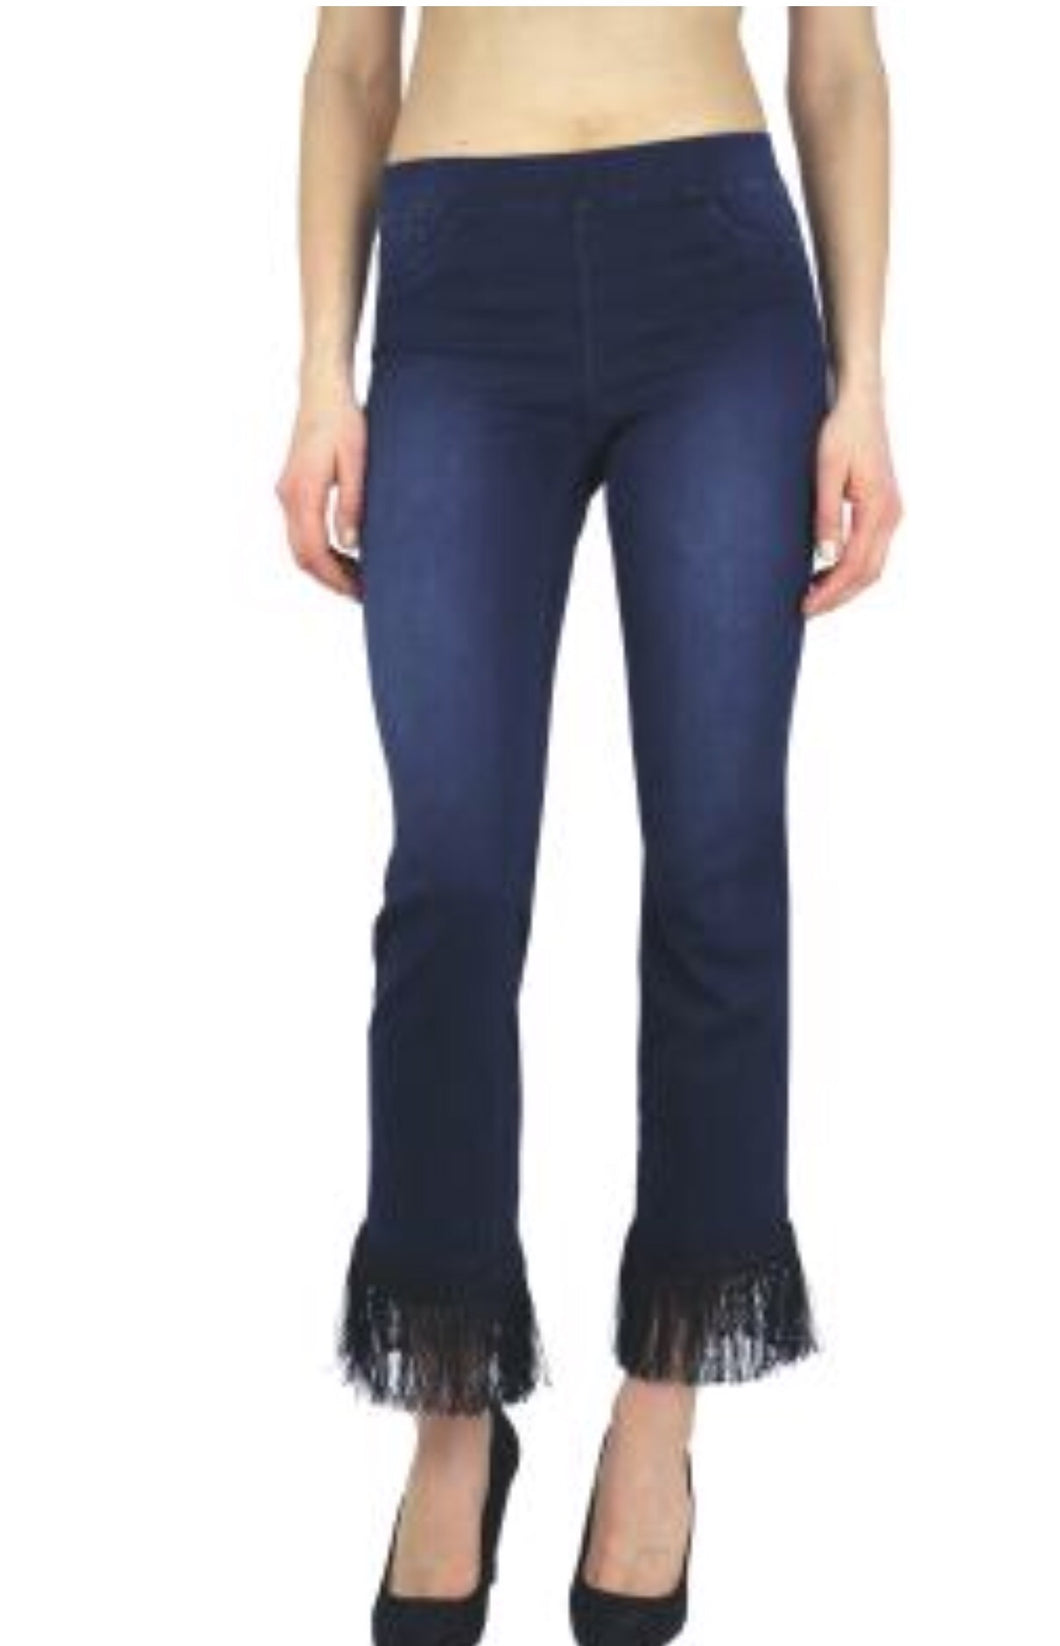 Dark Denim stretch jean with black fringe hem